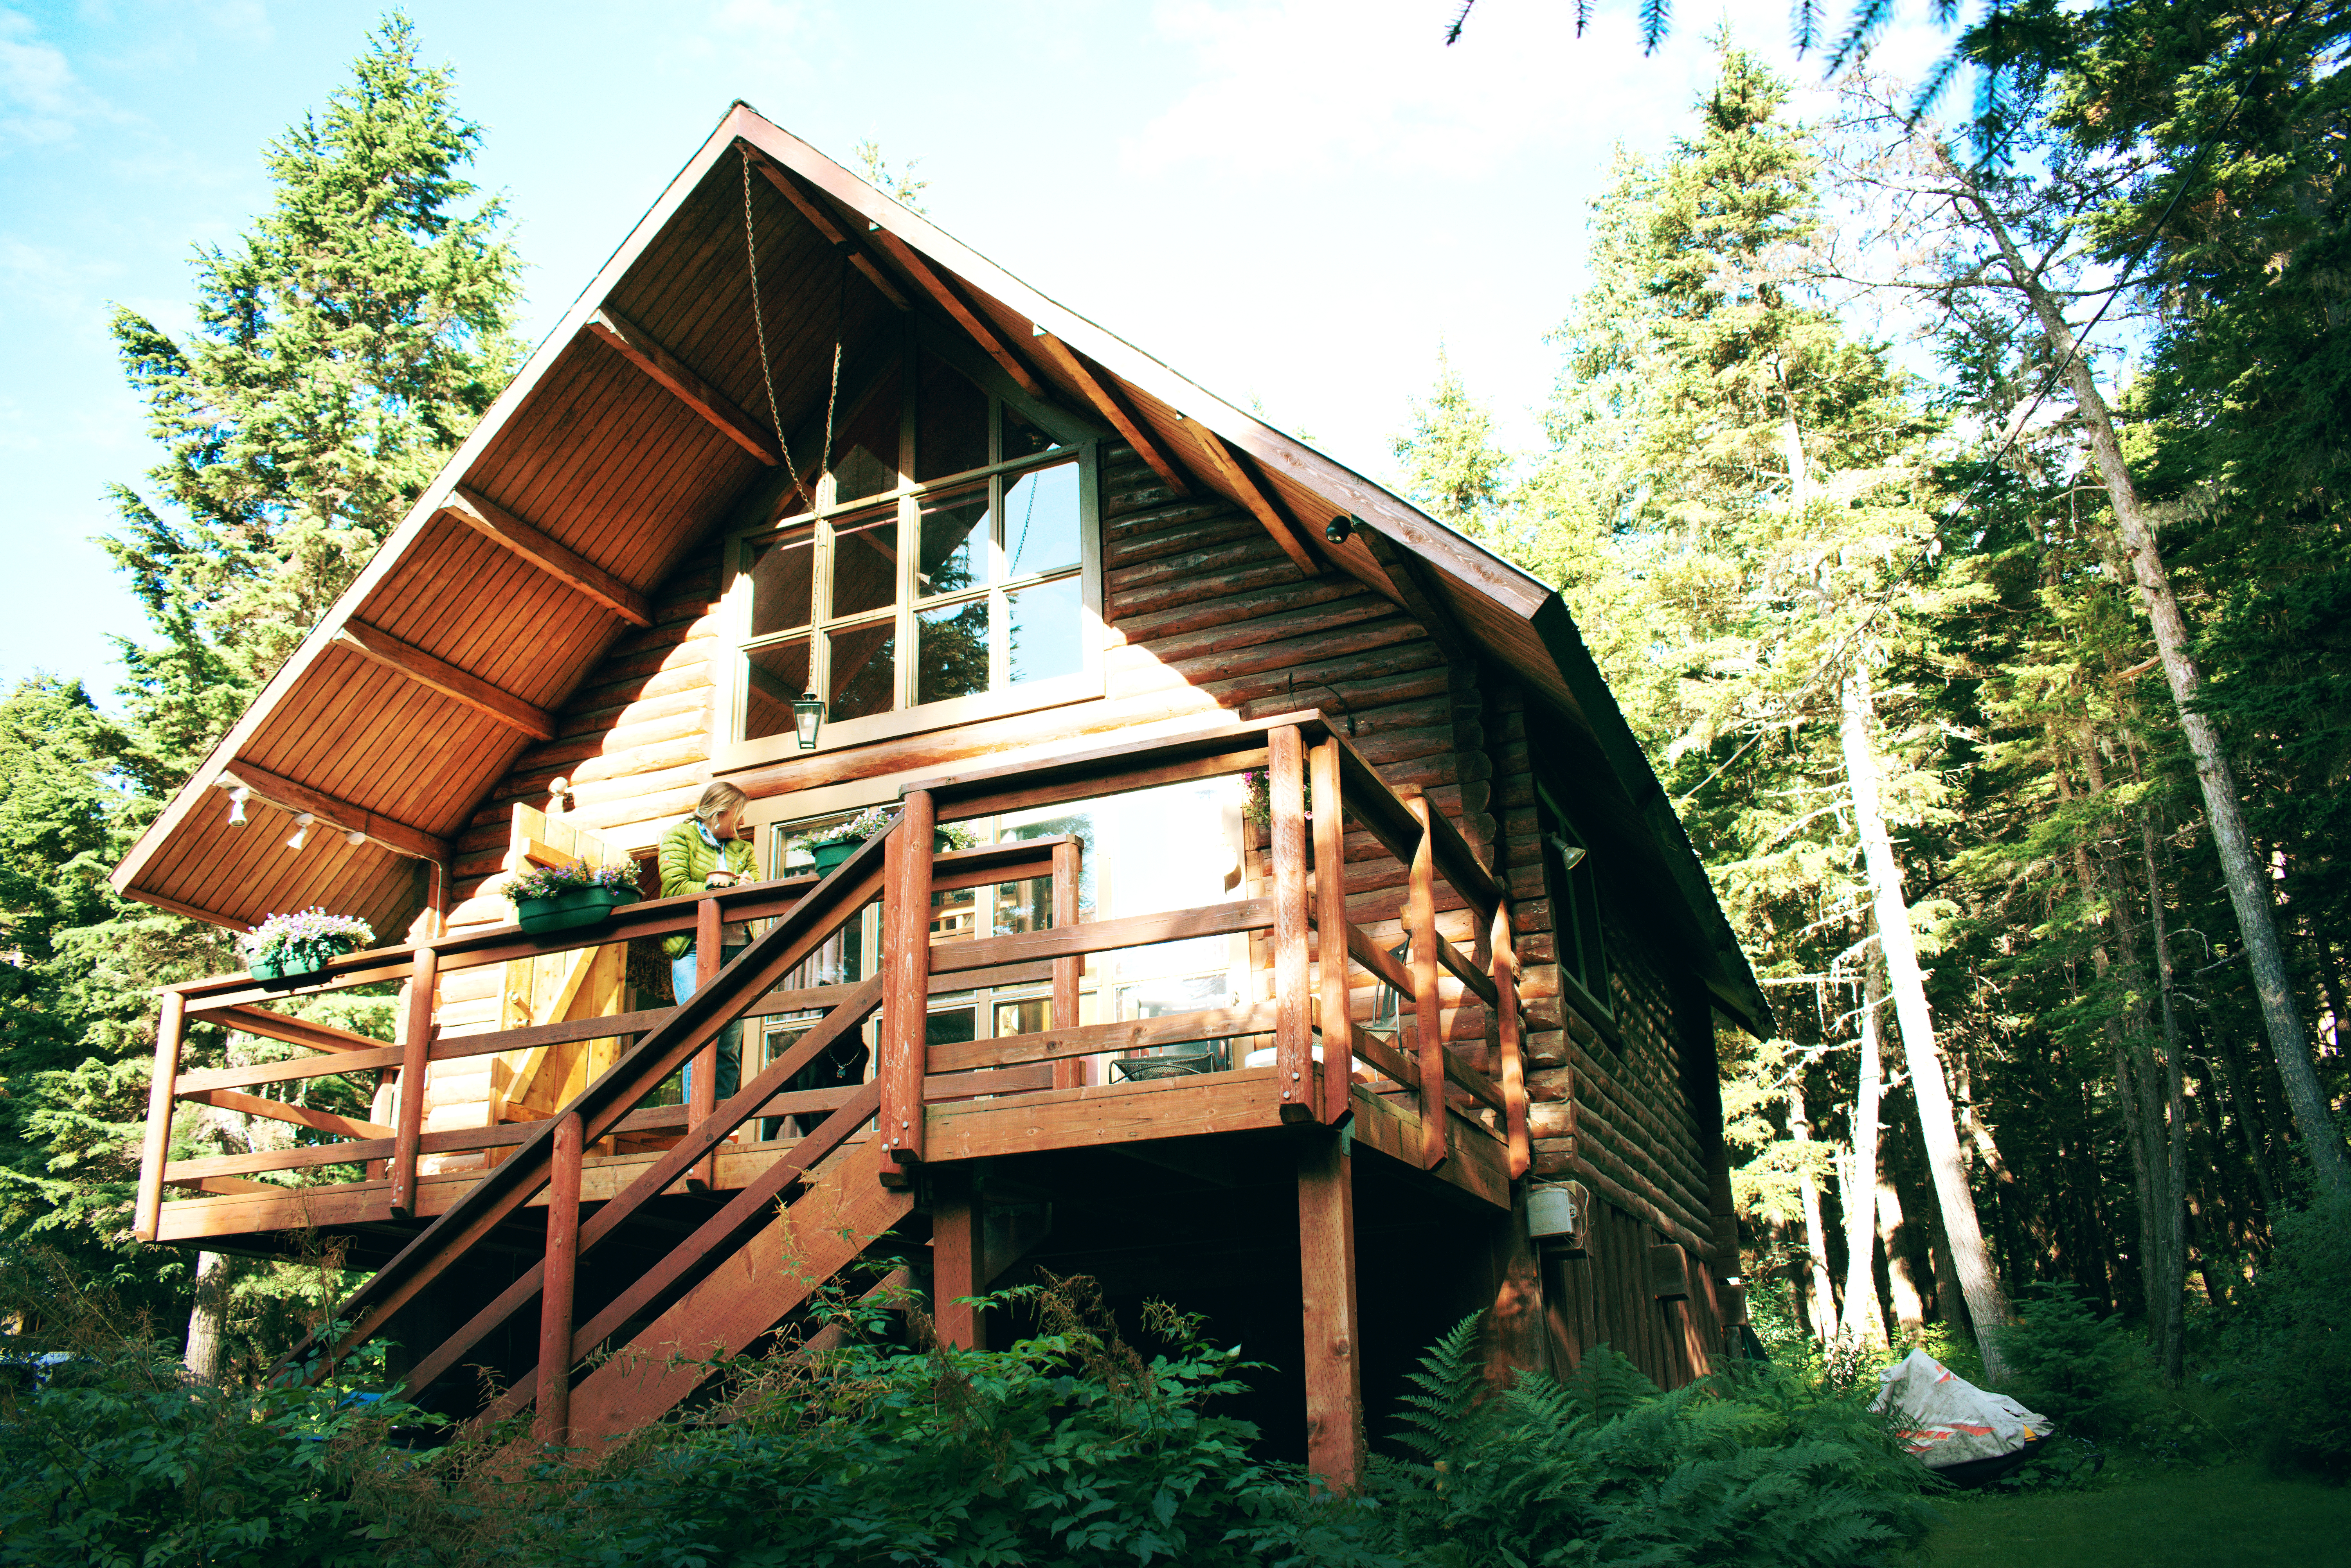 colorado anchorage cabins views anchorag denver furnished fully with girdwood log near alaska noncontinental rentals mountain cabin unitedstatesofamerica rental